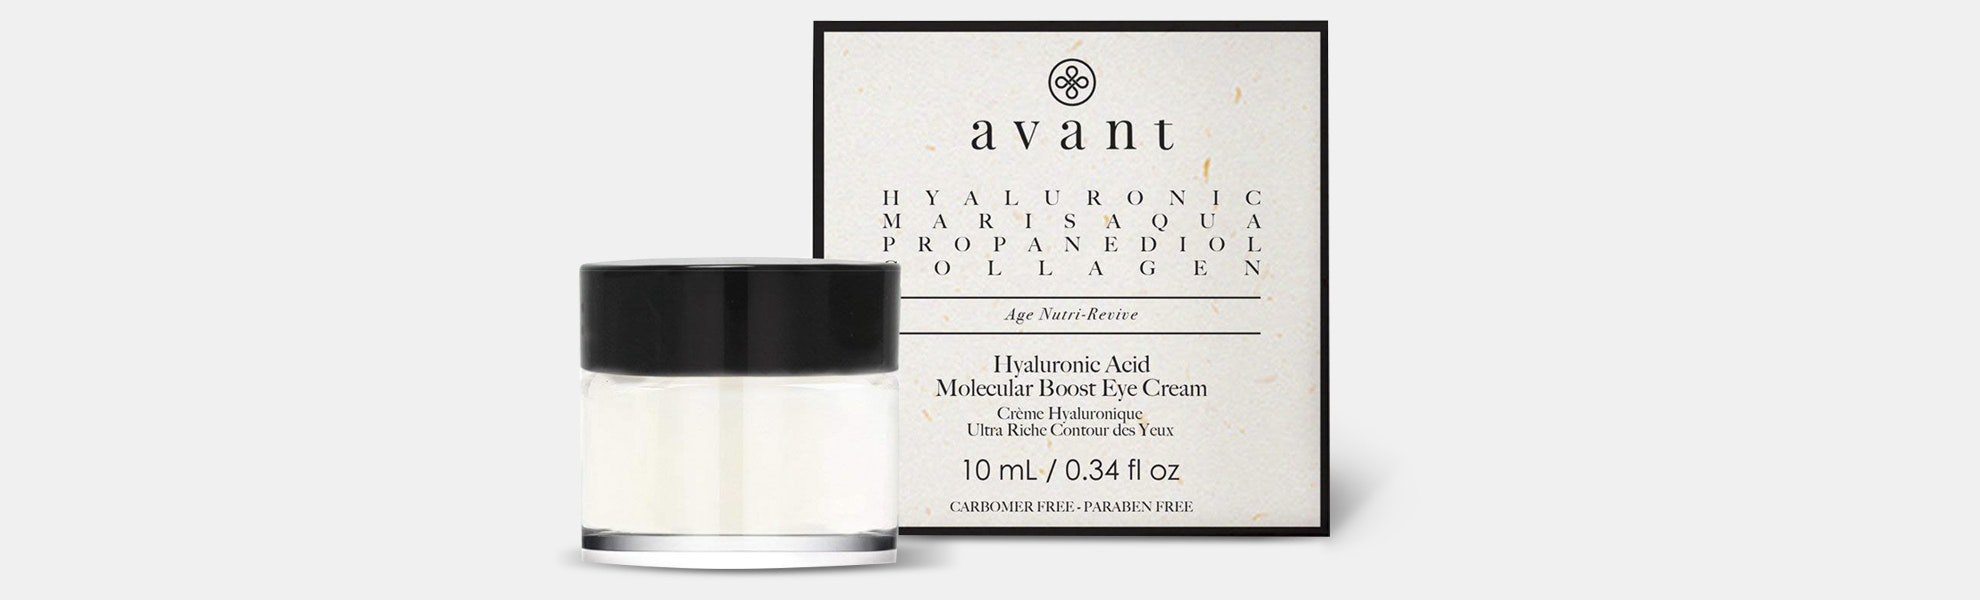 Avant Hyaluronic Acid Molecular Boost Eye Cream